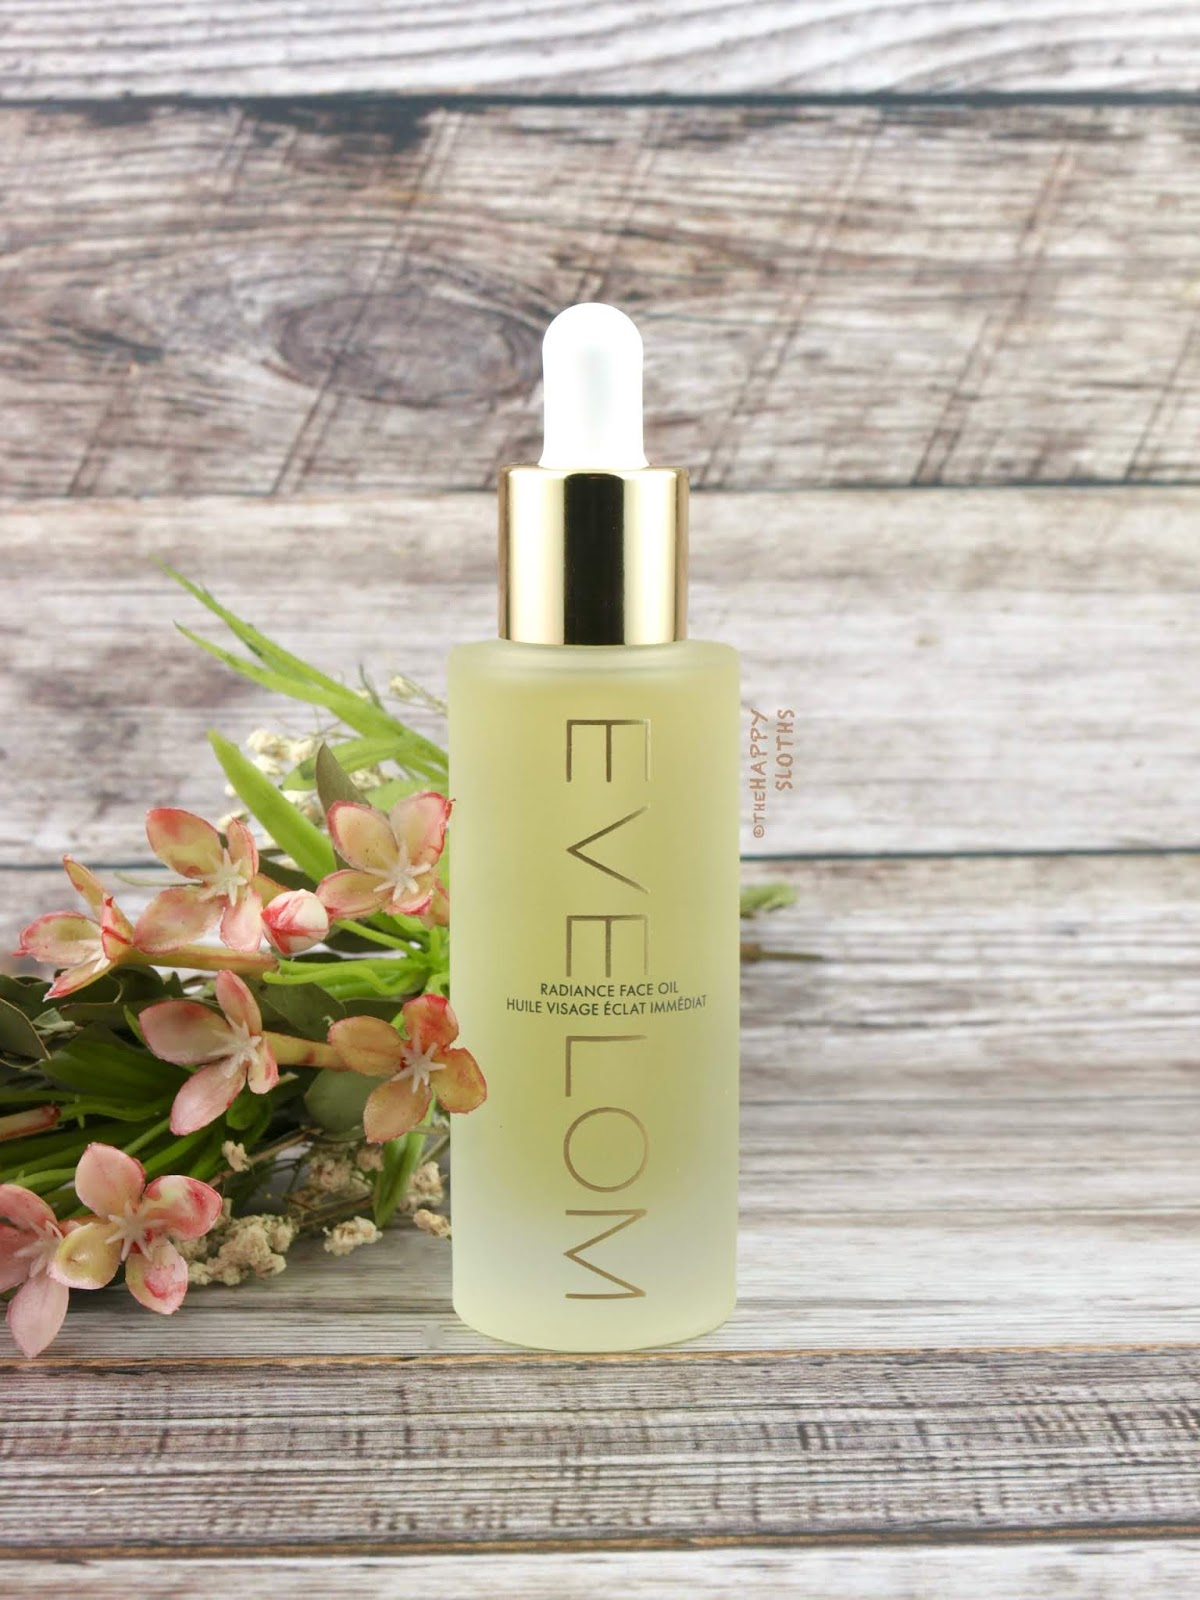 Eve Lom | Radiance Face Oil: Review